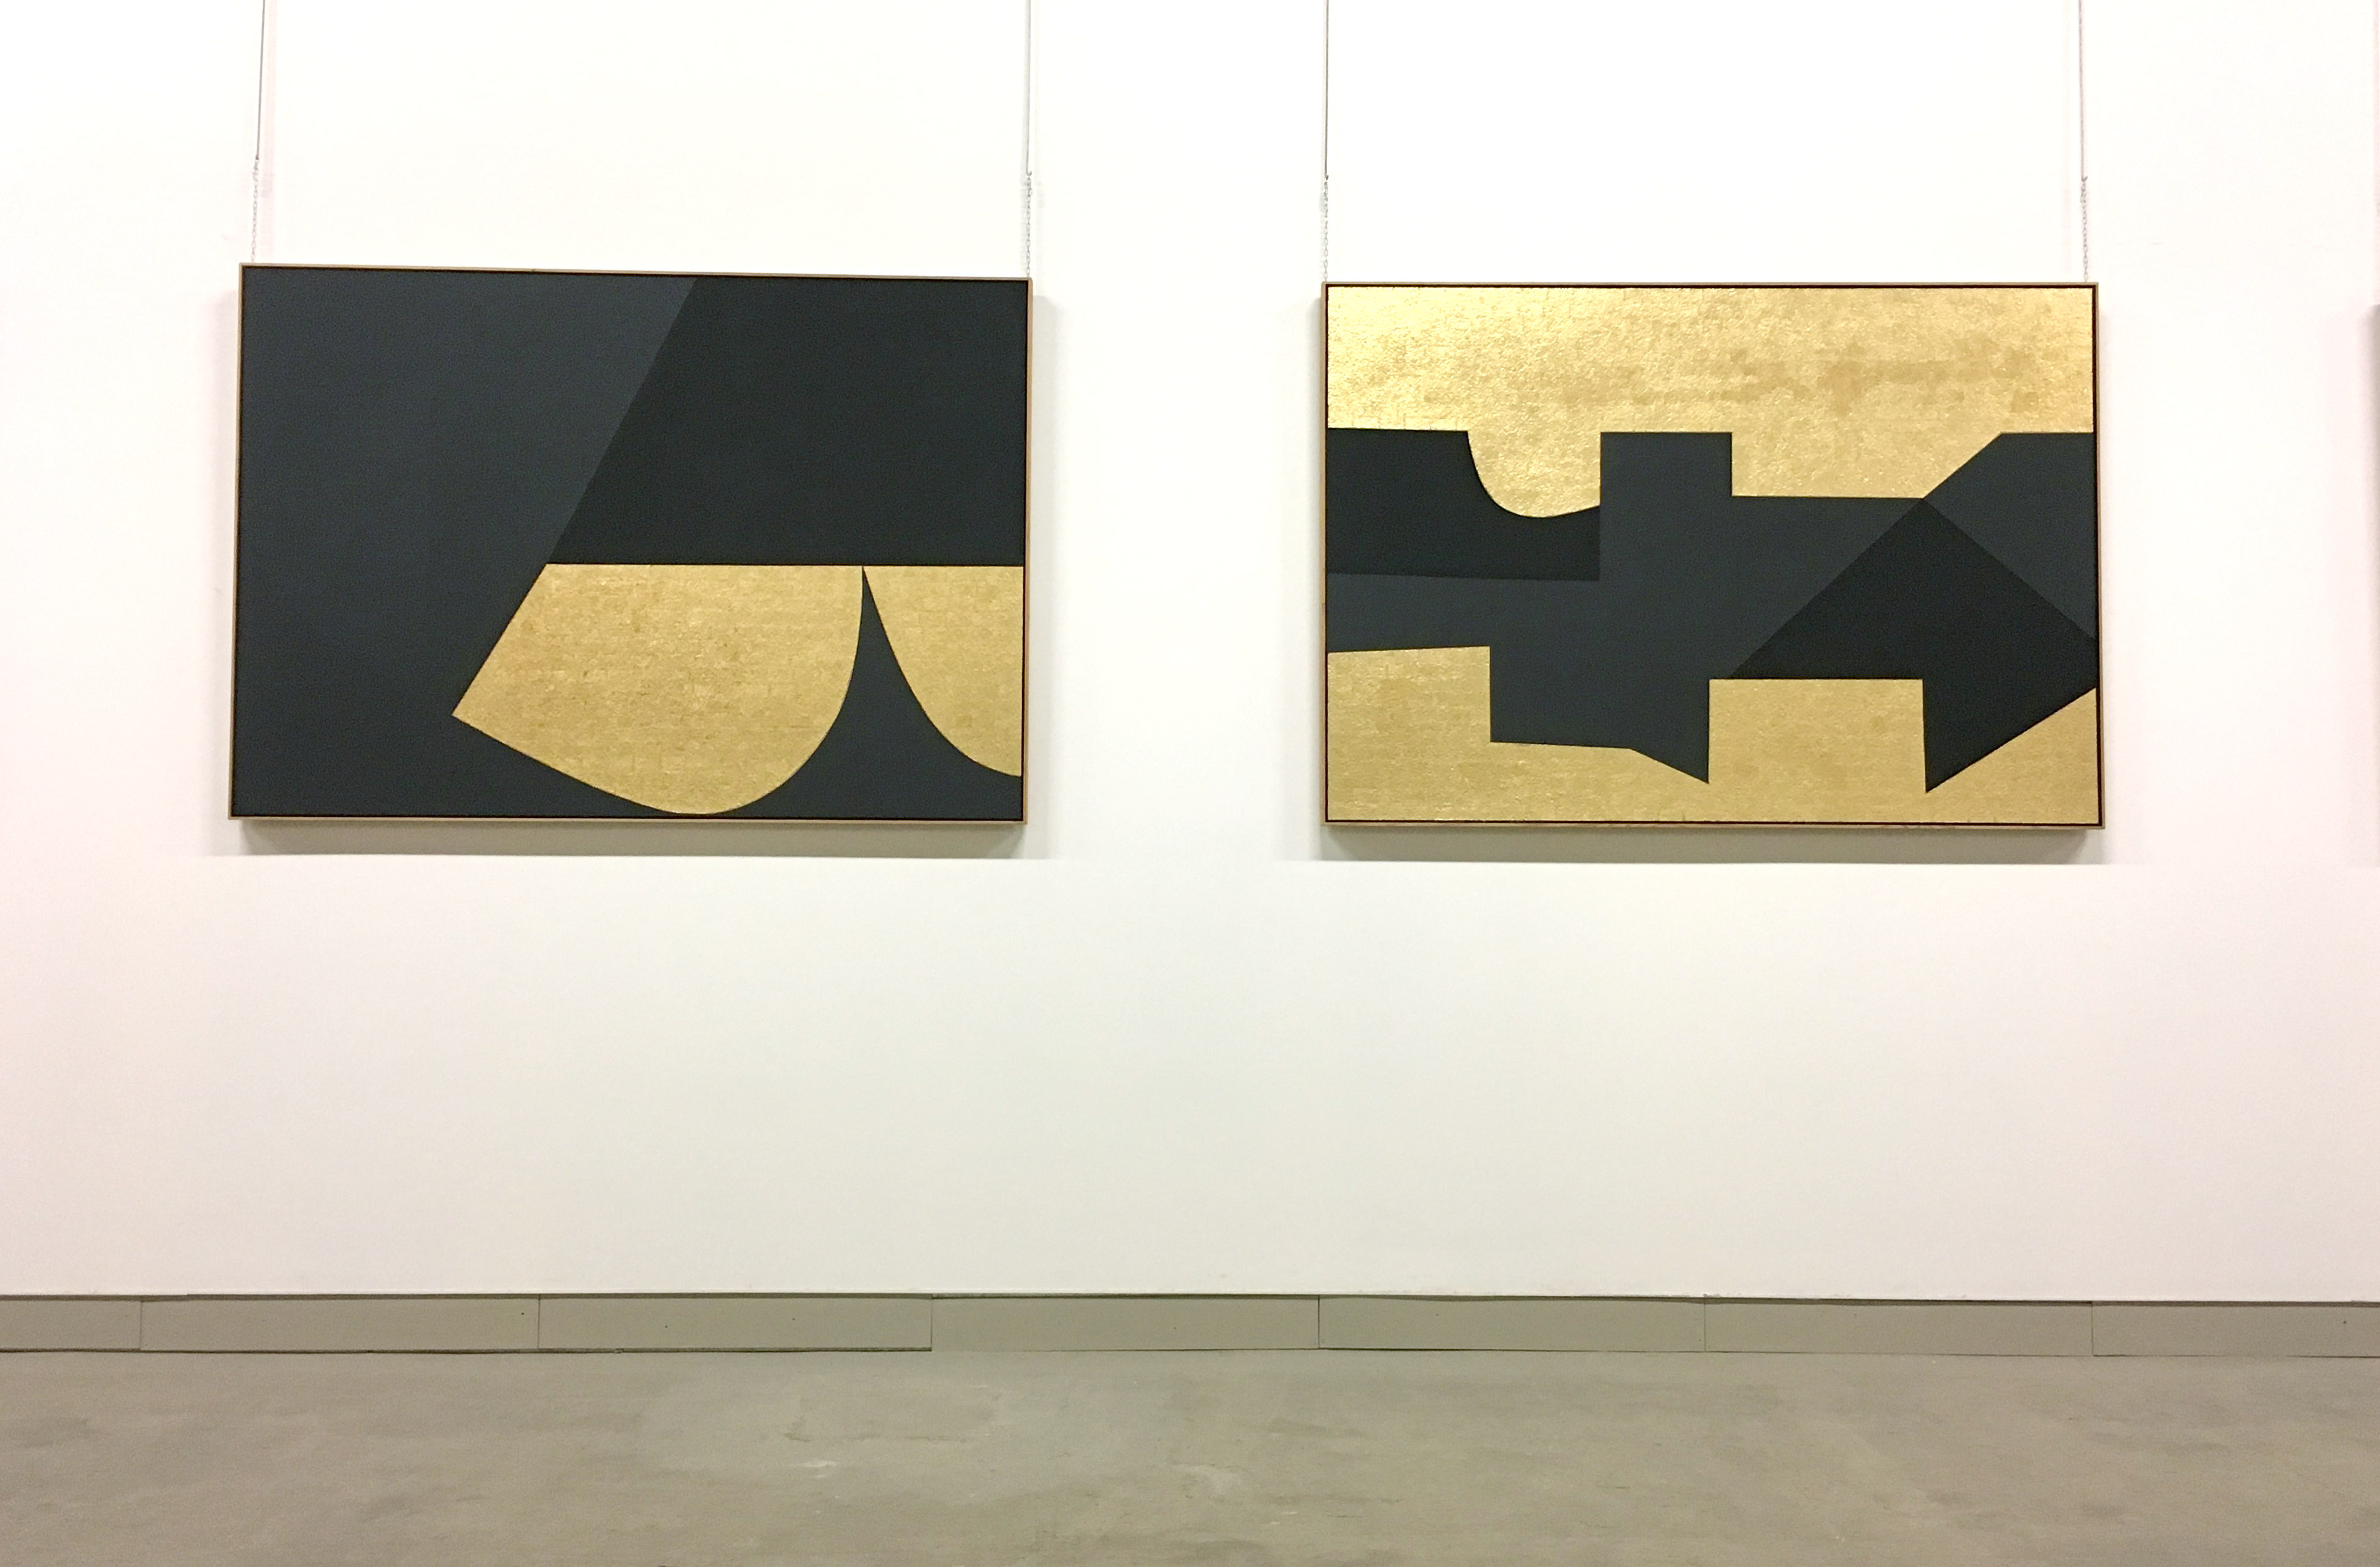 Gold and black Burri artworks in tobacco factory Italy